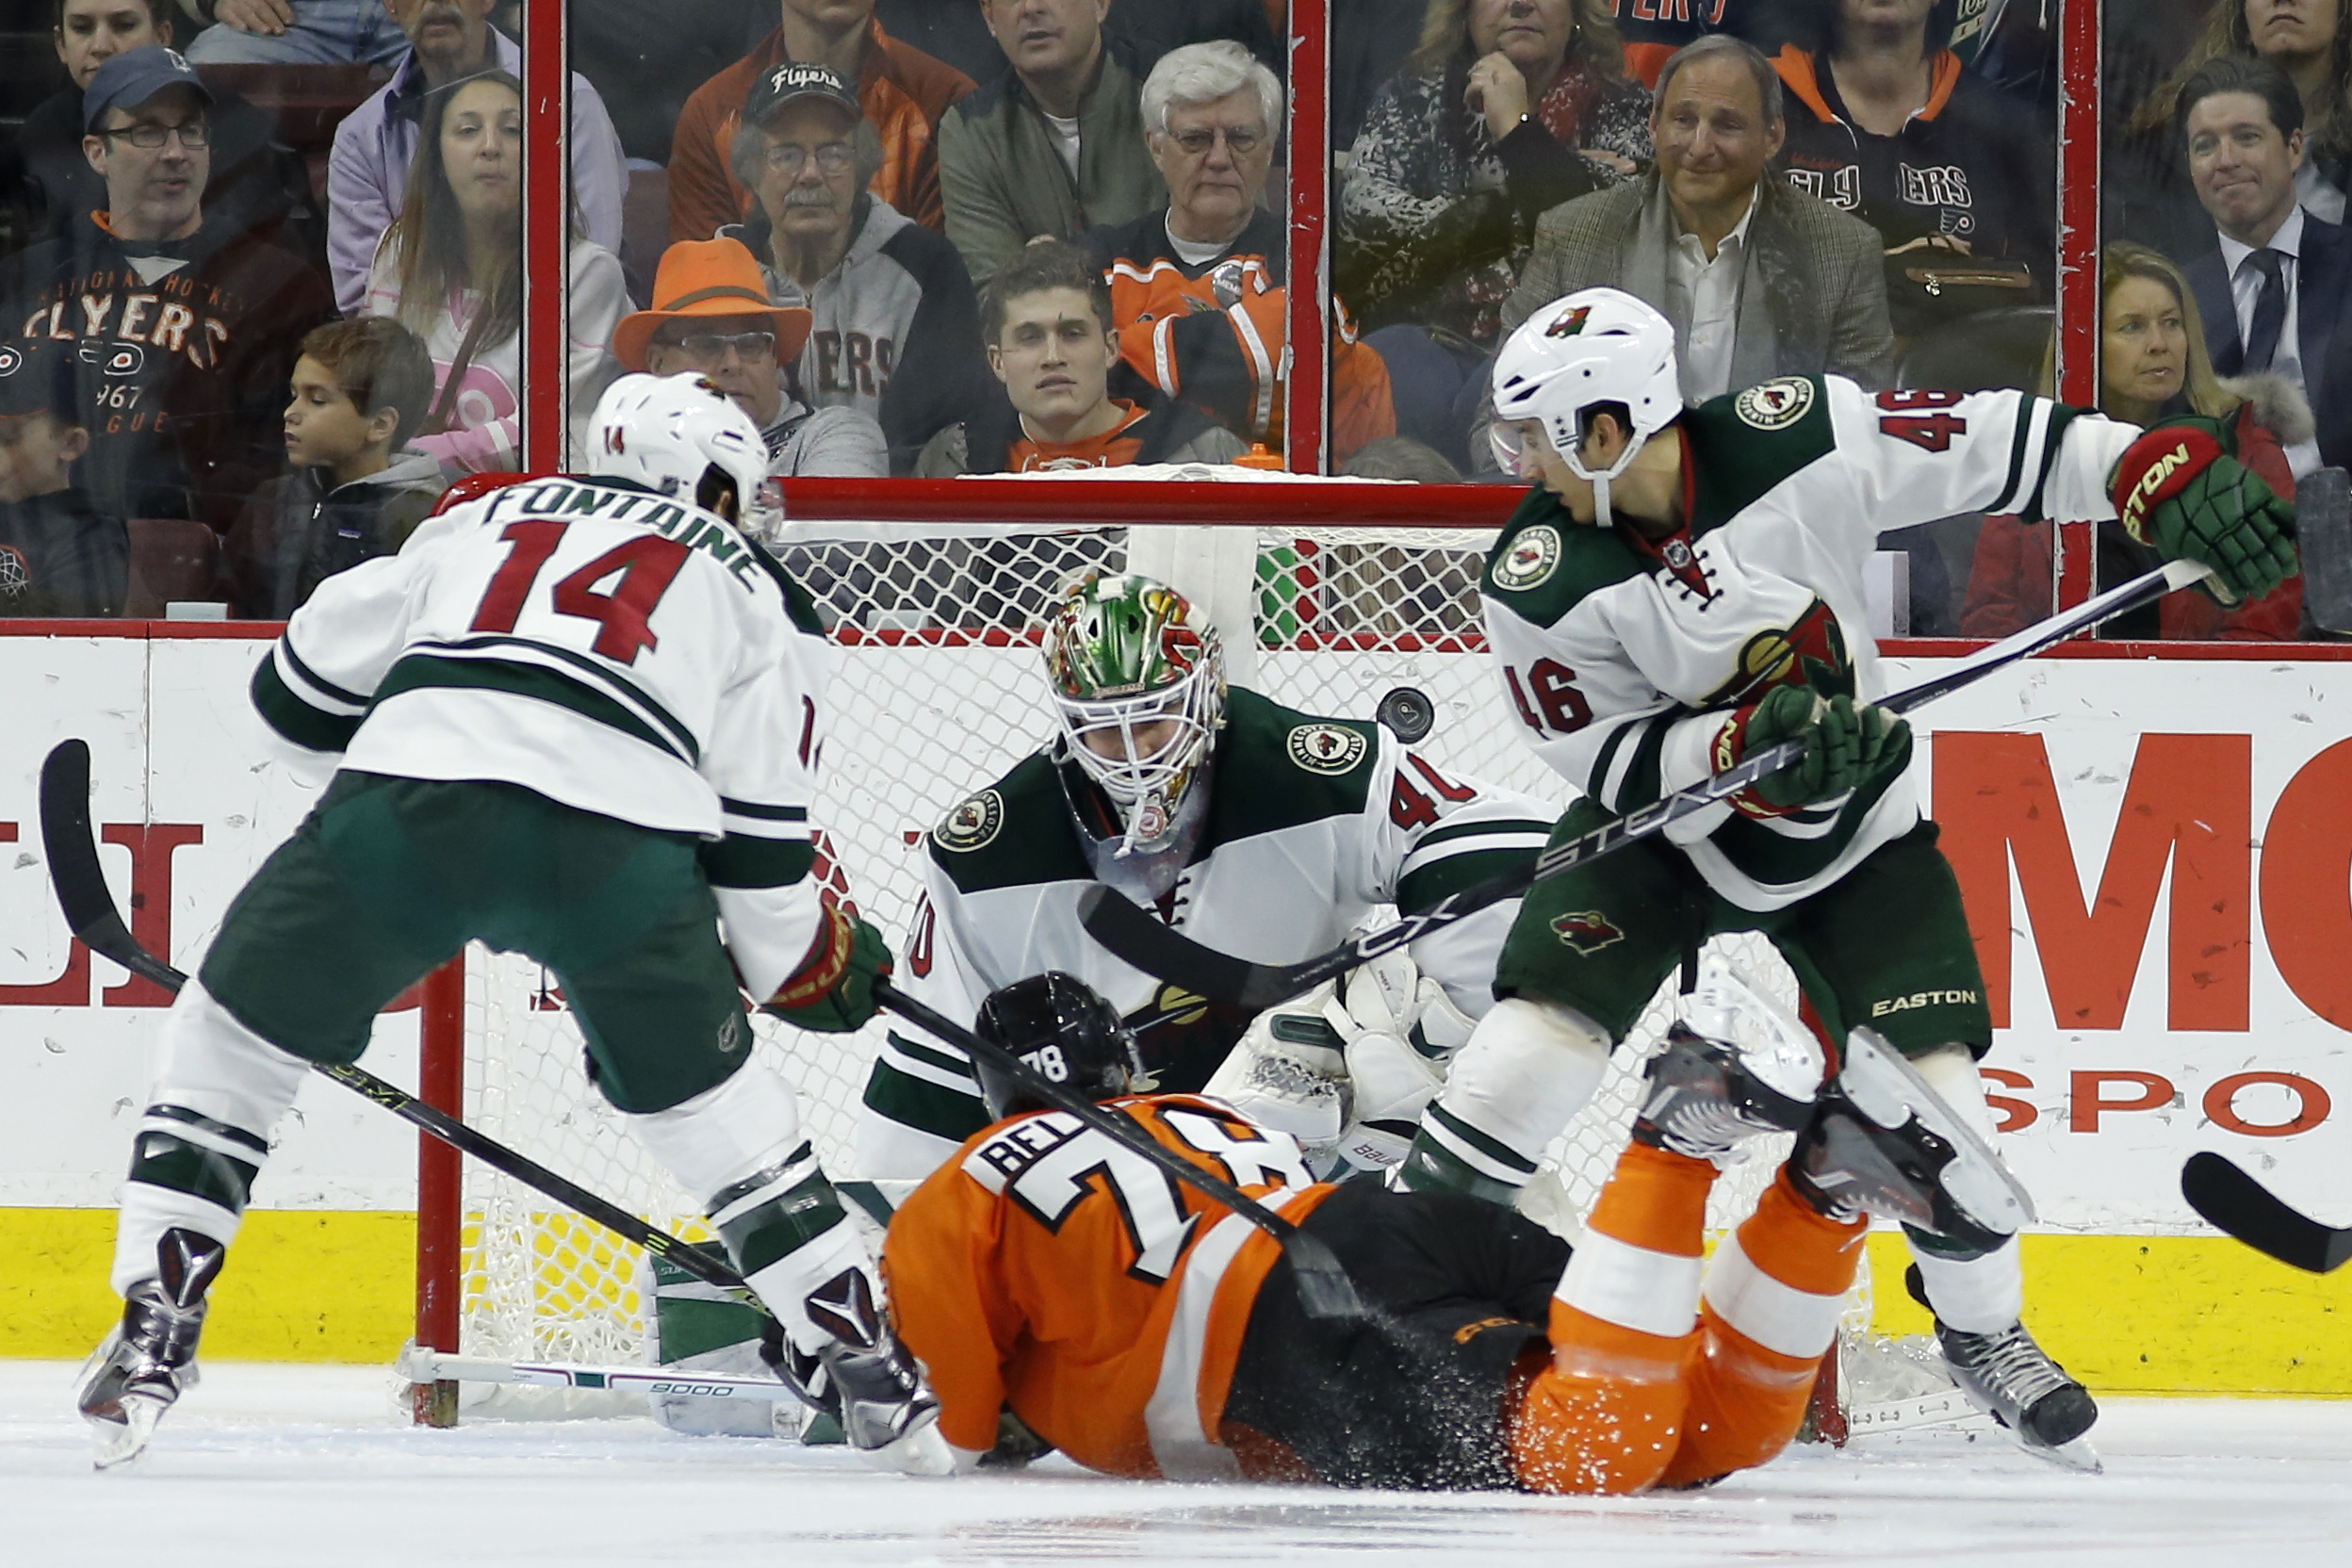 Philadelphia Flyers' Pierre-Edouard Bellemare (78) scores a goal past Minnesota Wild's Devan Dubnyk (40) as Justin Fontaine (14) and Jared Spurgeon (46) defend during the third period of an NHL hockey game, Thursday, Feb. 25, 2016, in Philadelphia. Philad